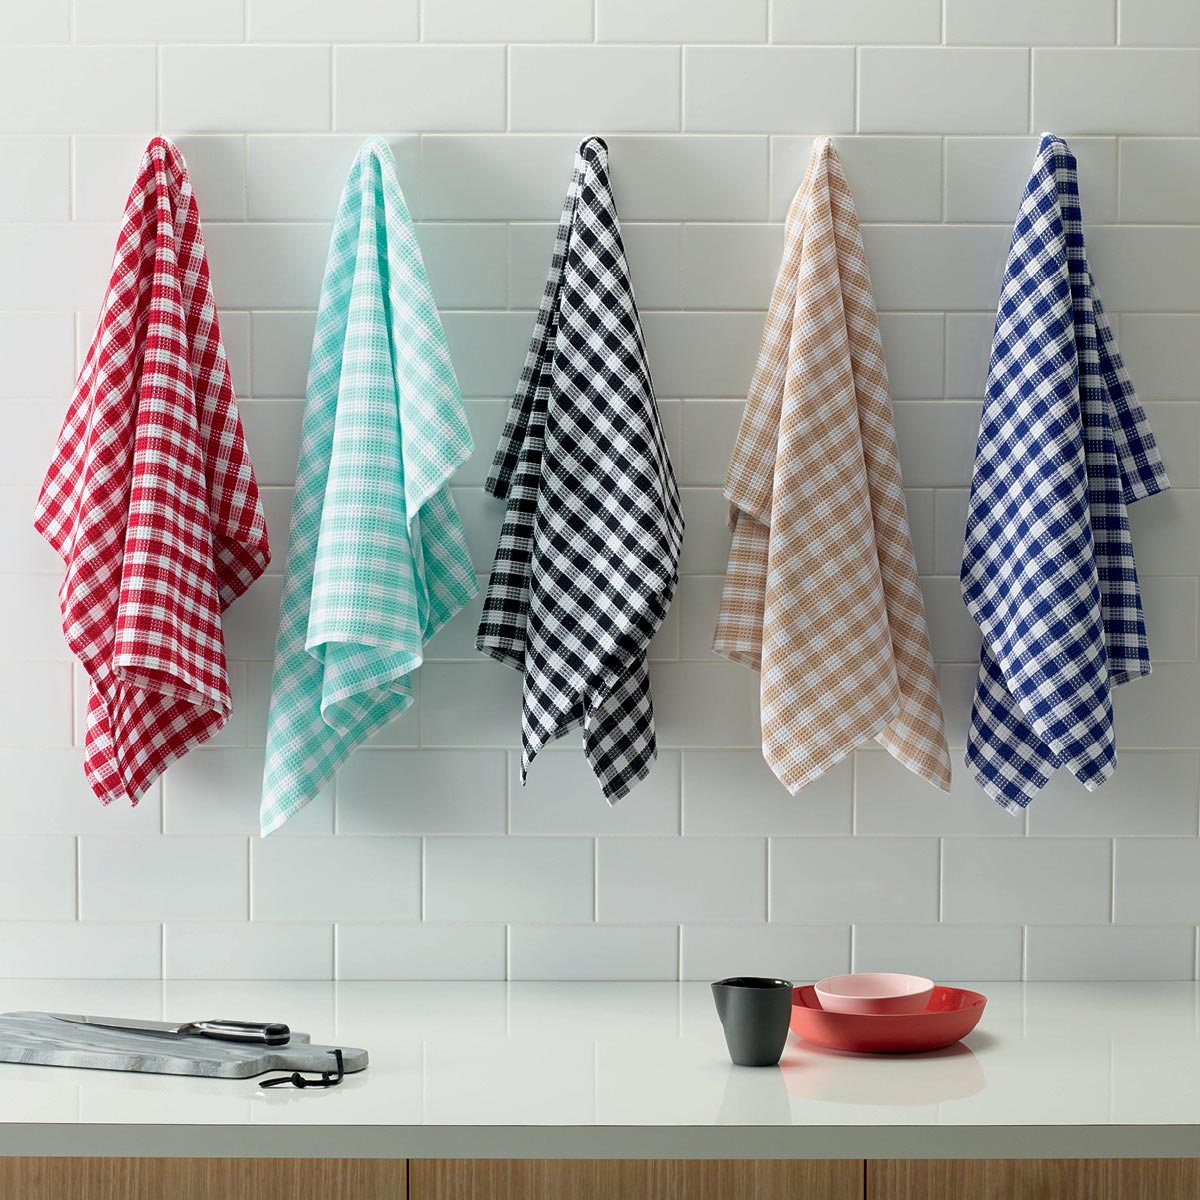 How Often Should You Wash Your Dish Towels